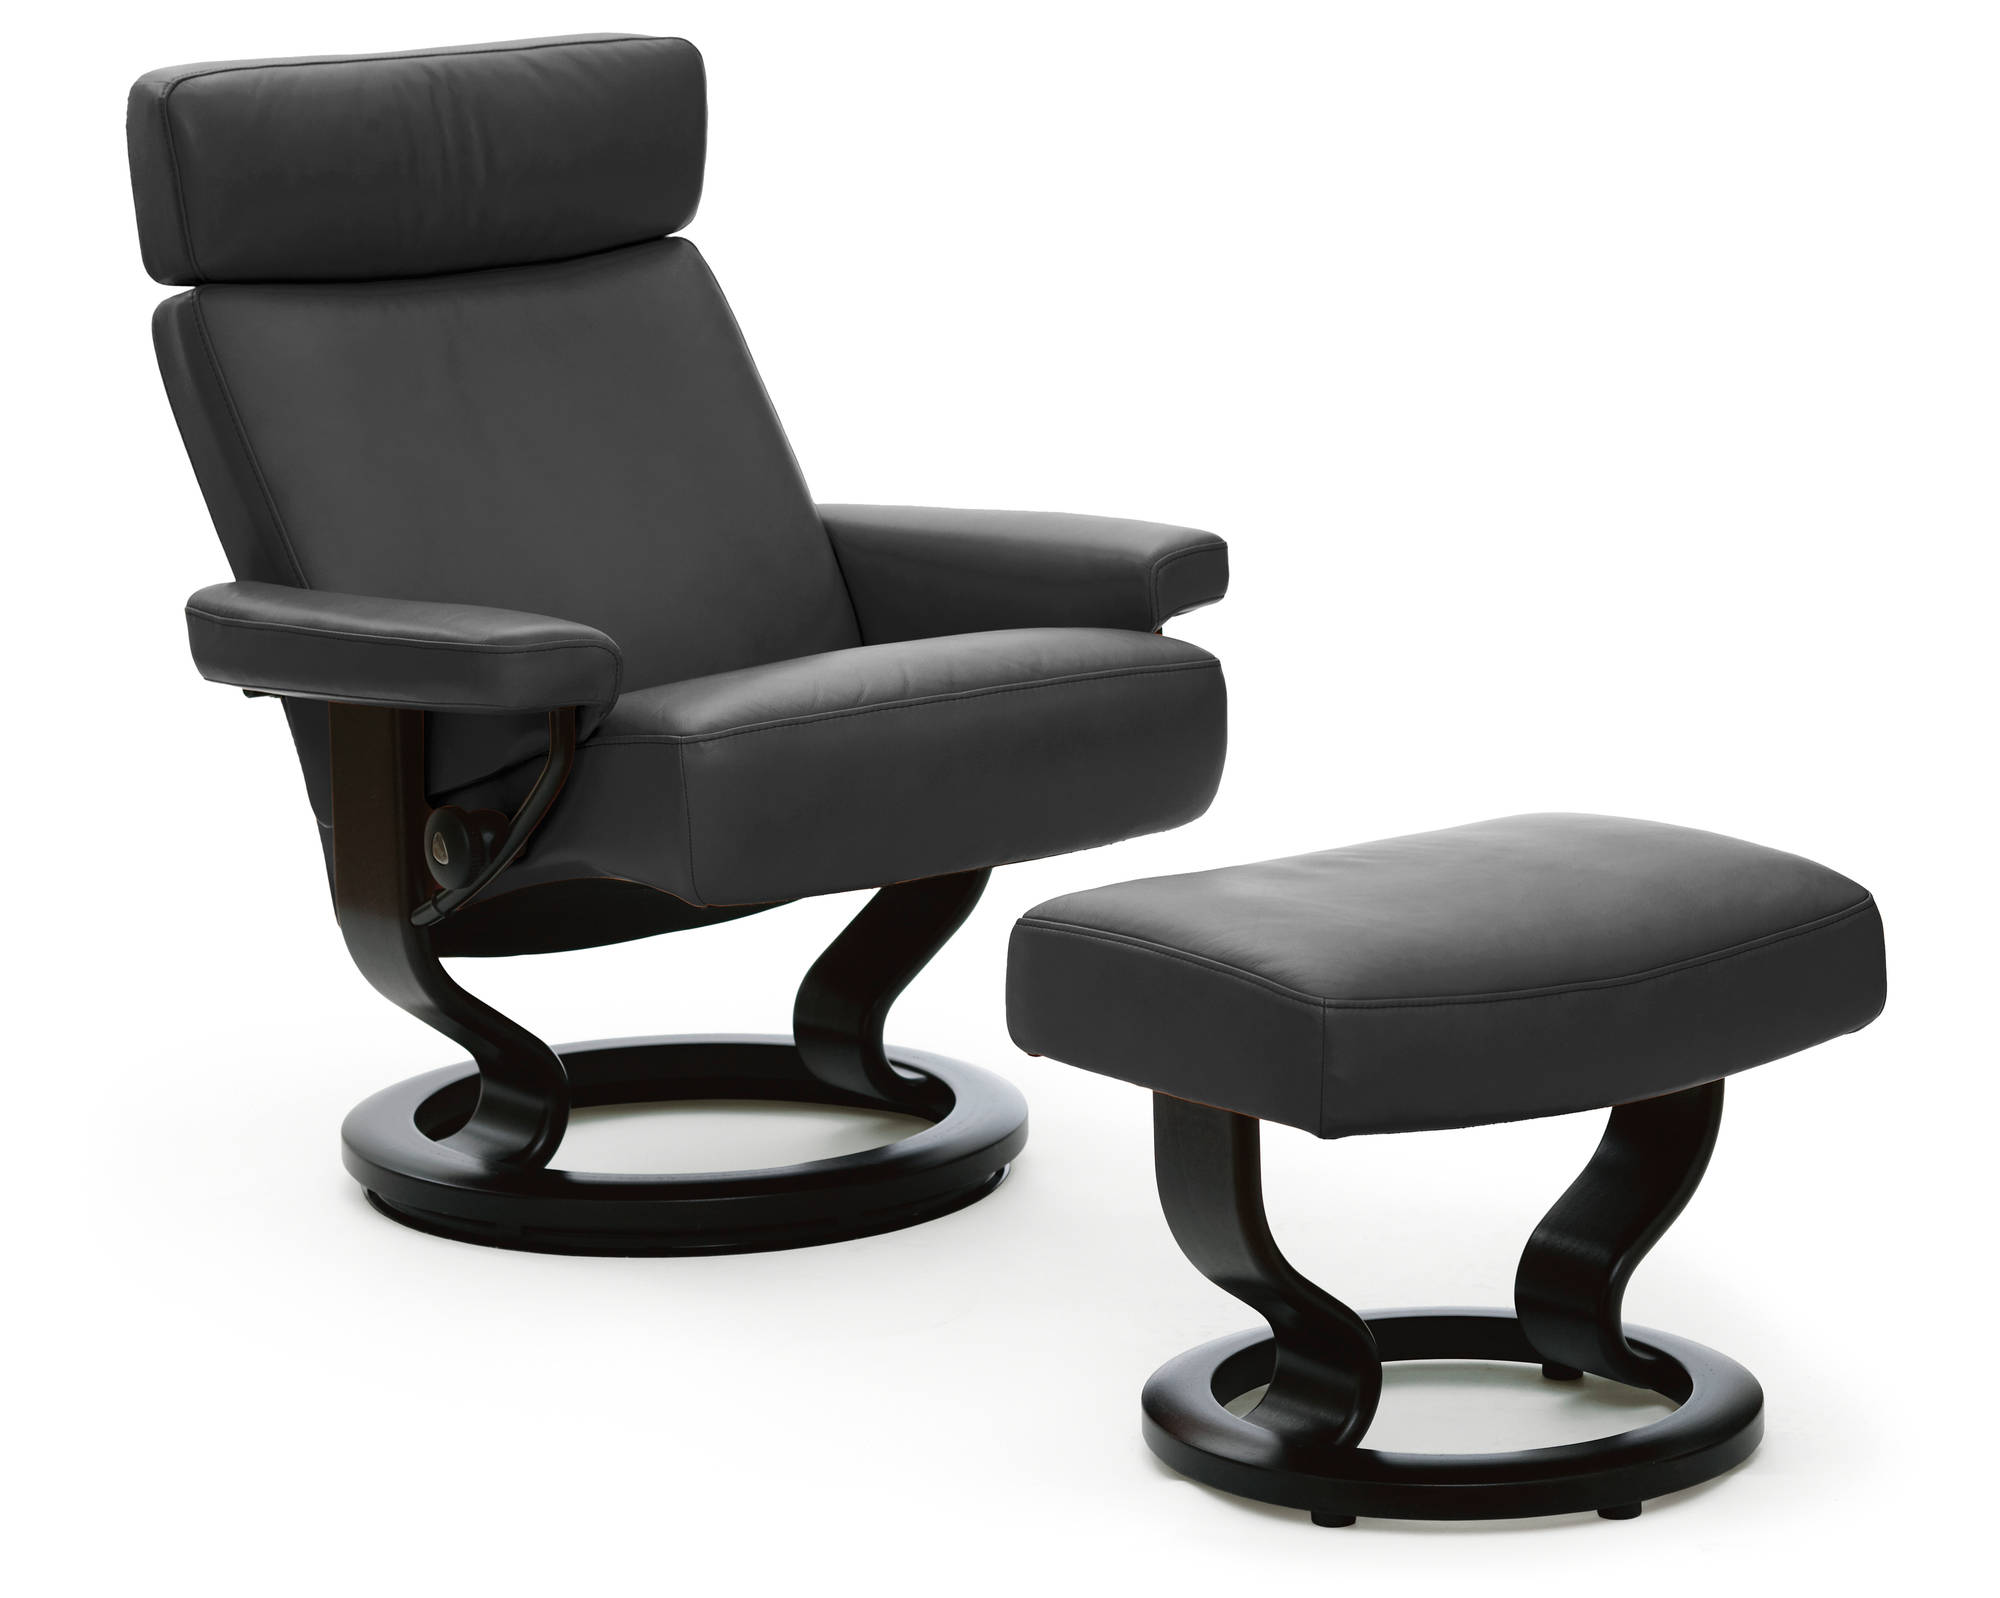 stressless orion stressless. Black Bedroom Furniture Sets. Home Design Ideas